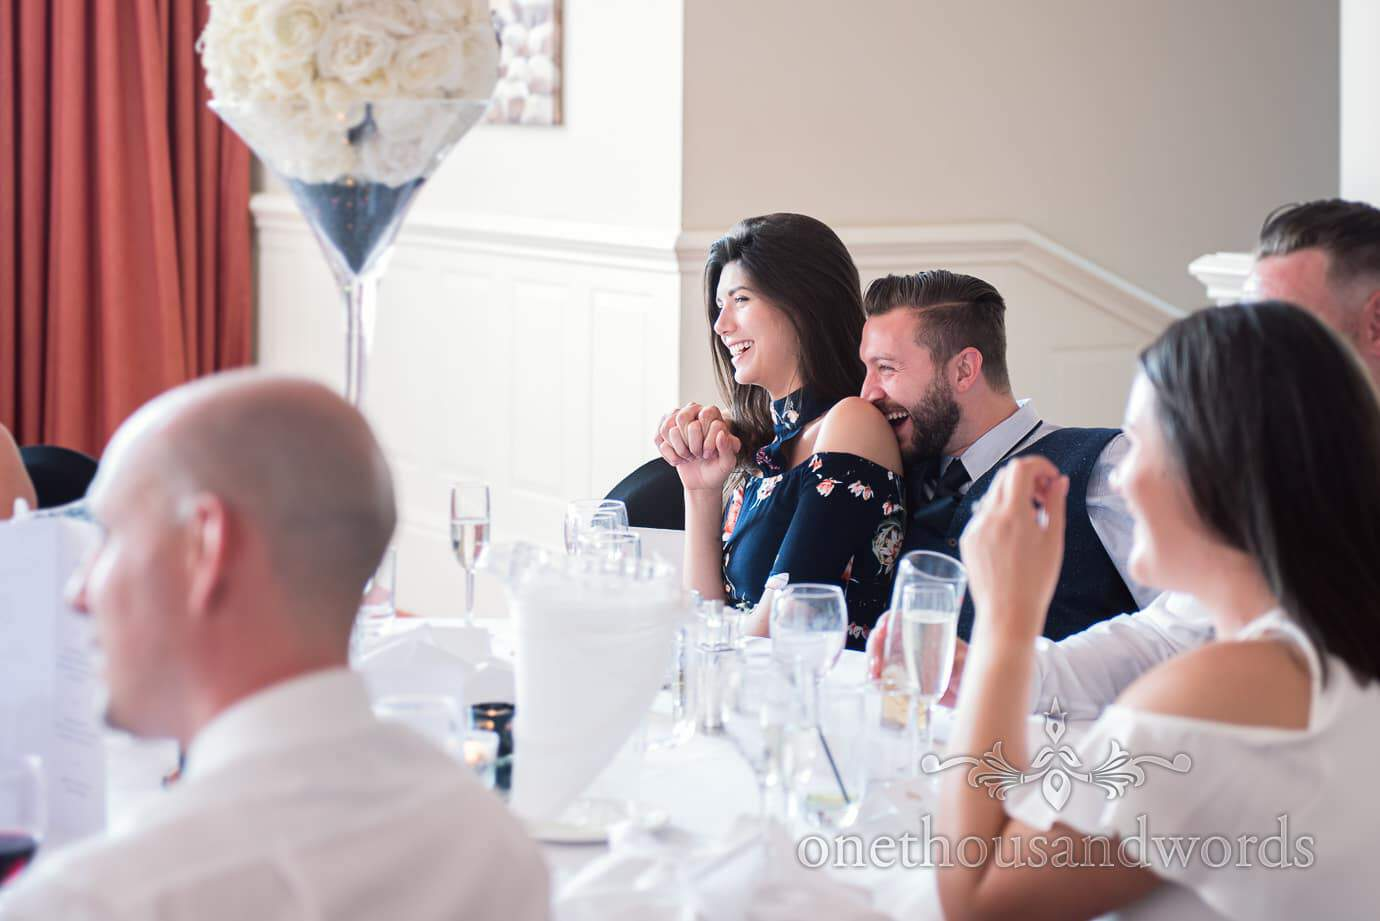 Wedding guests laughing at wedding speeches at Haven Hotel wedding breakfast